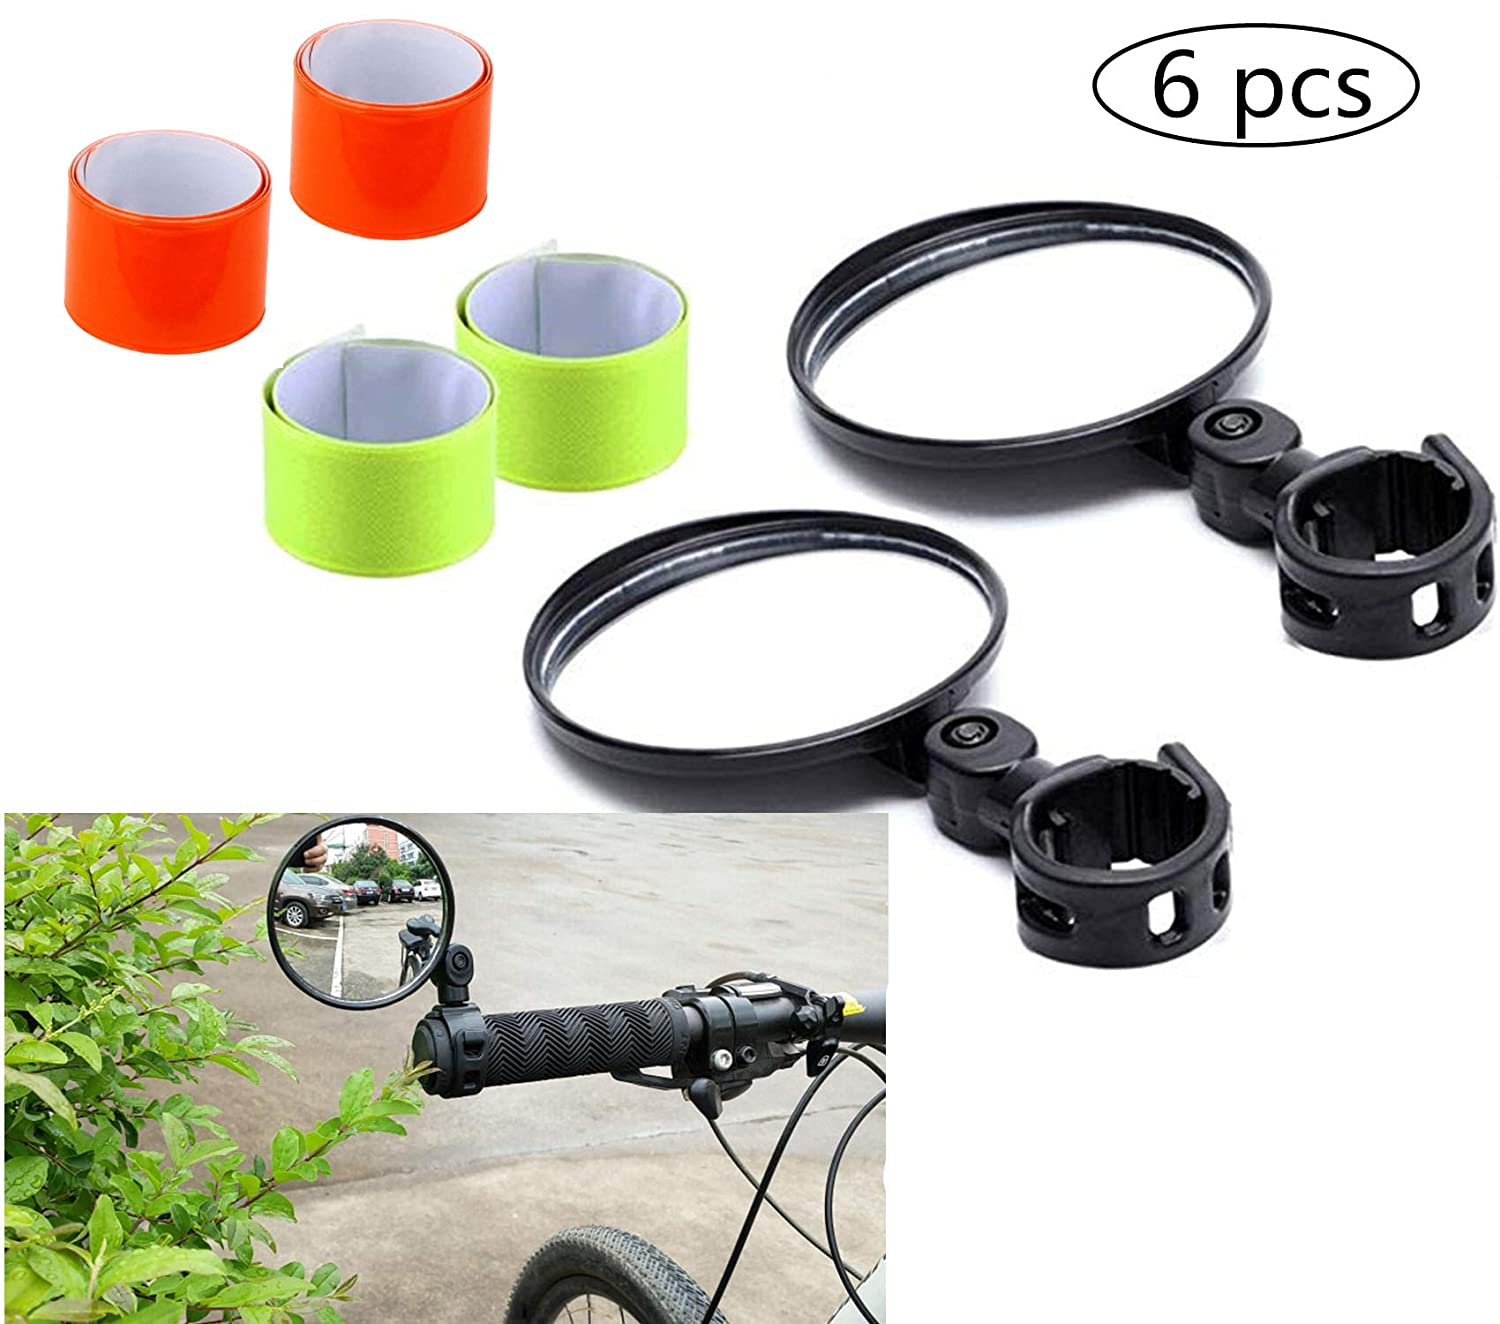 NF orange 2-Pack Adjustable Rotatable Handlebar Glass Mirror for Mountain Road Bike Cycling Bicycle Bonus 4 Pcs Reflective Bands for Cycling